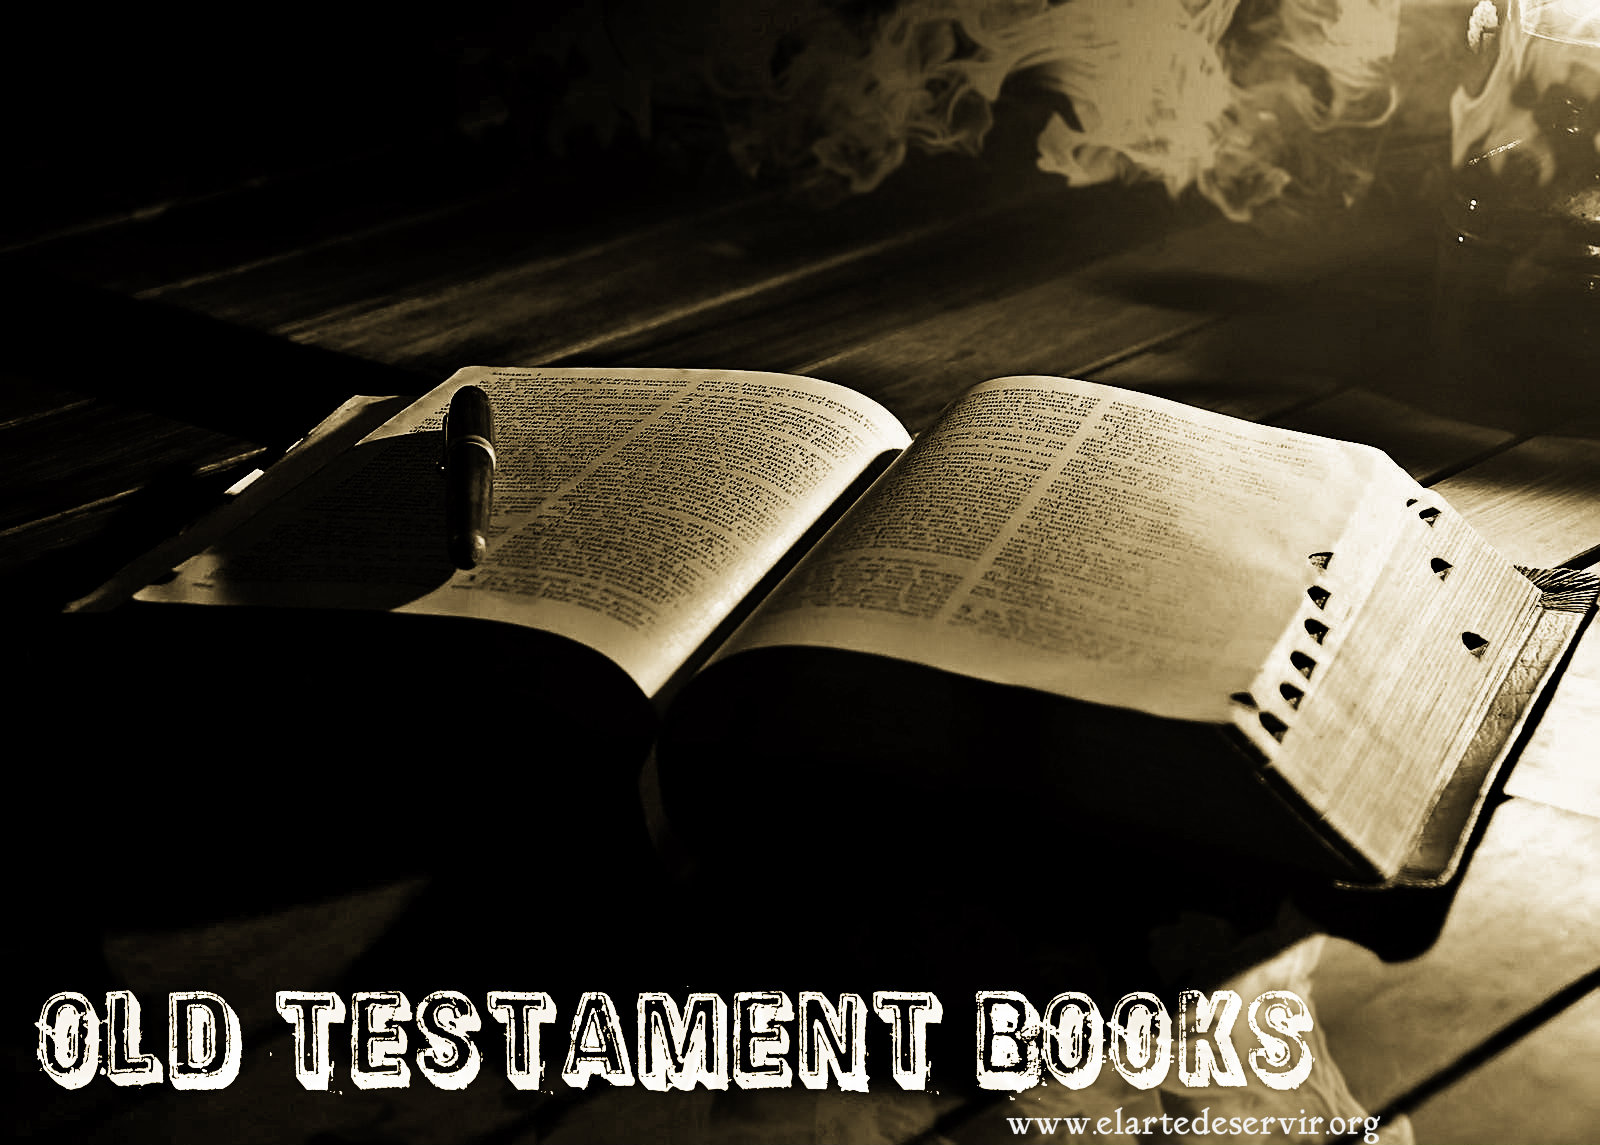 To download Old Testament Books * El Arte de Servir